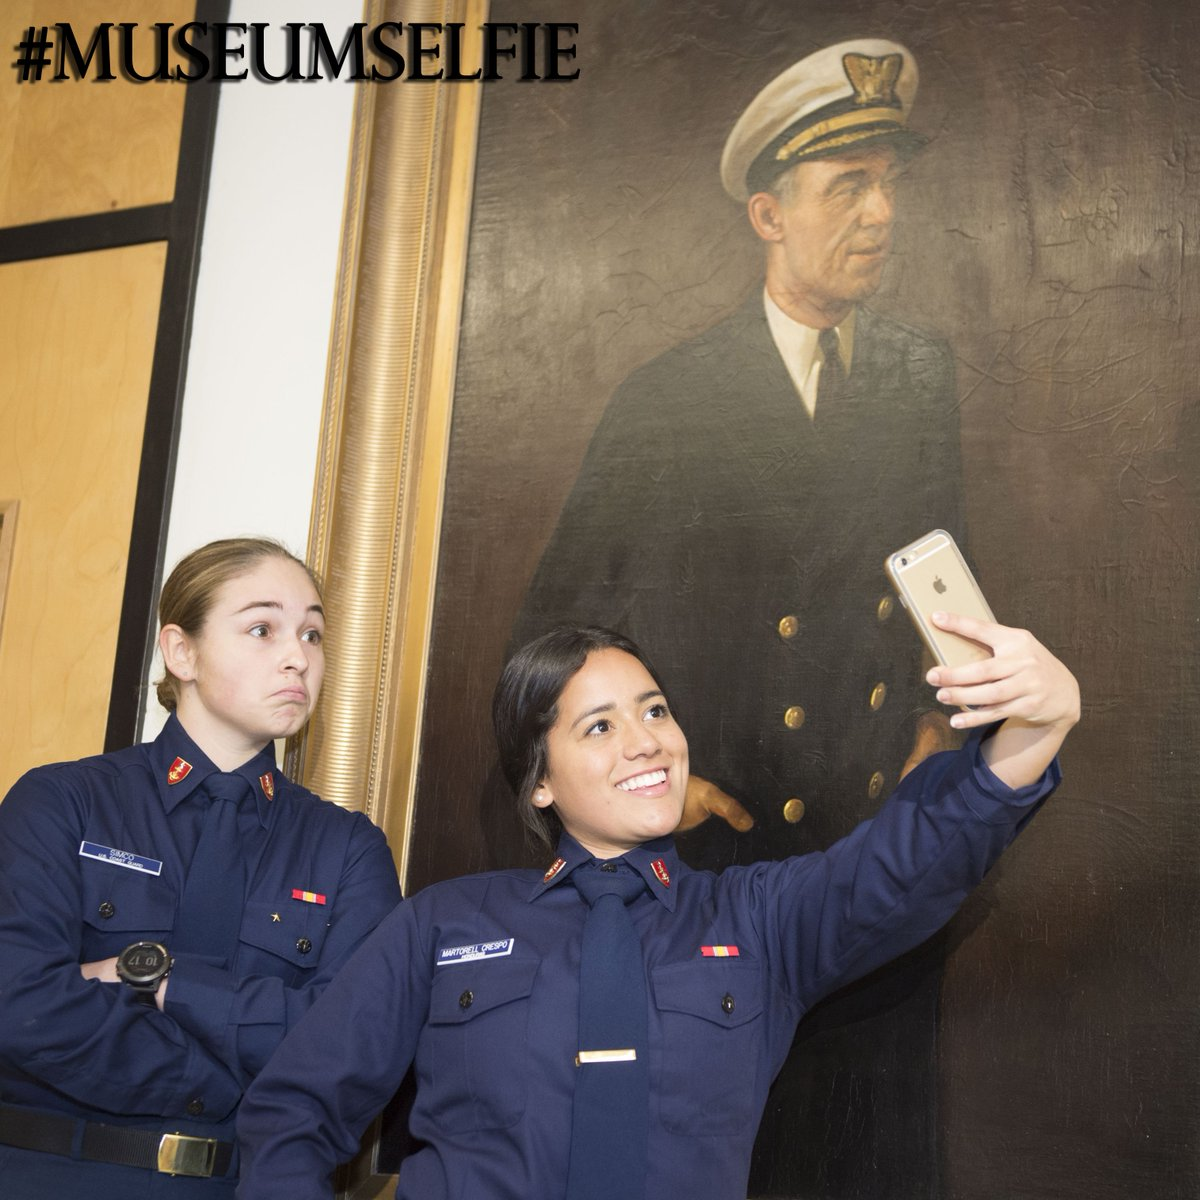 @USCGAcademy Cadets and Staff enjoy museum selfie day at the CG Museum...